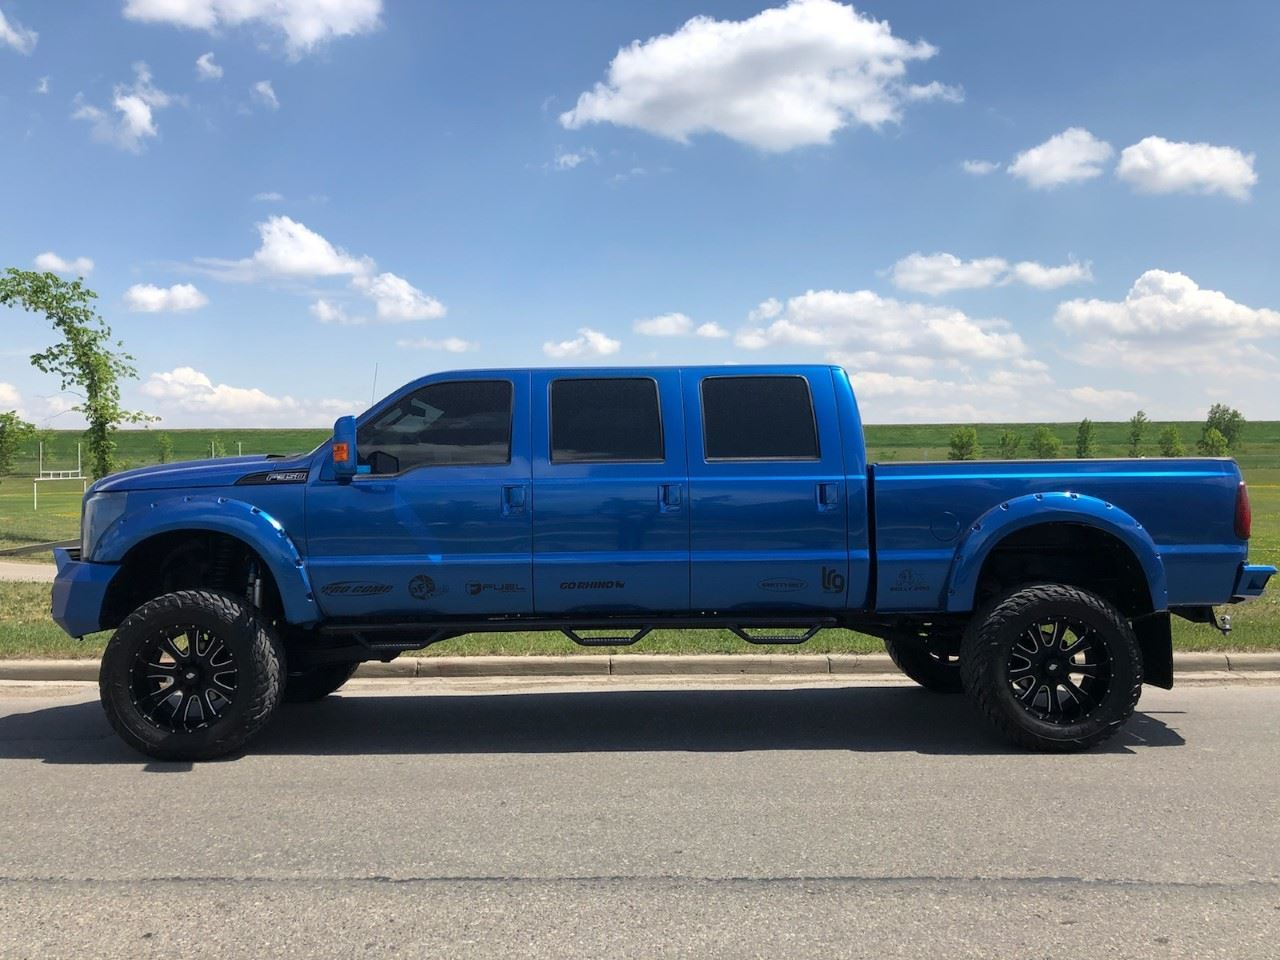 hight resolution of image 1 2008 ford f350 xl custom six door conversion